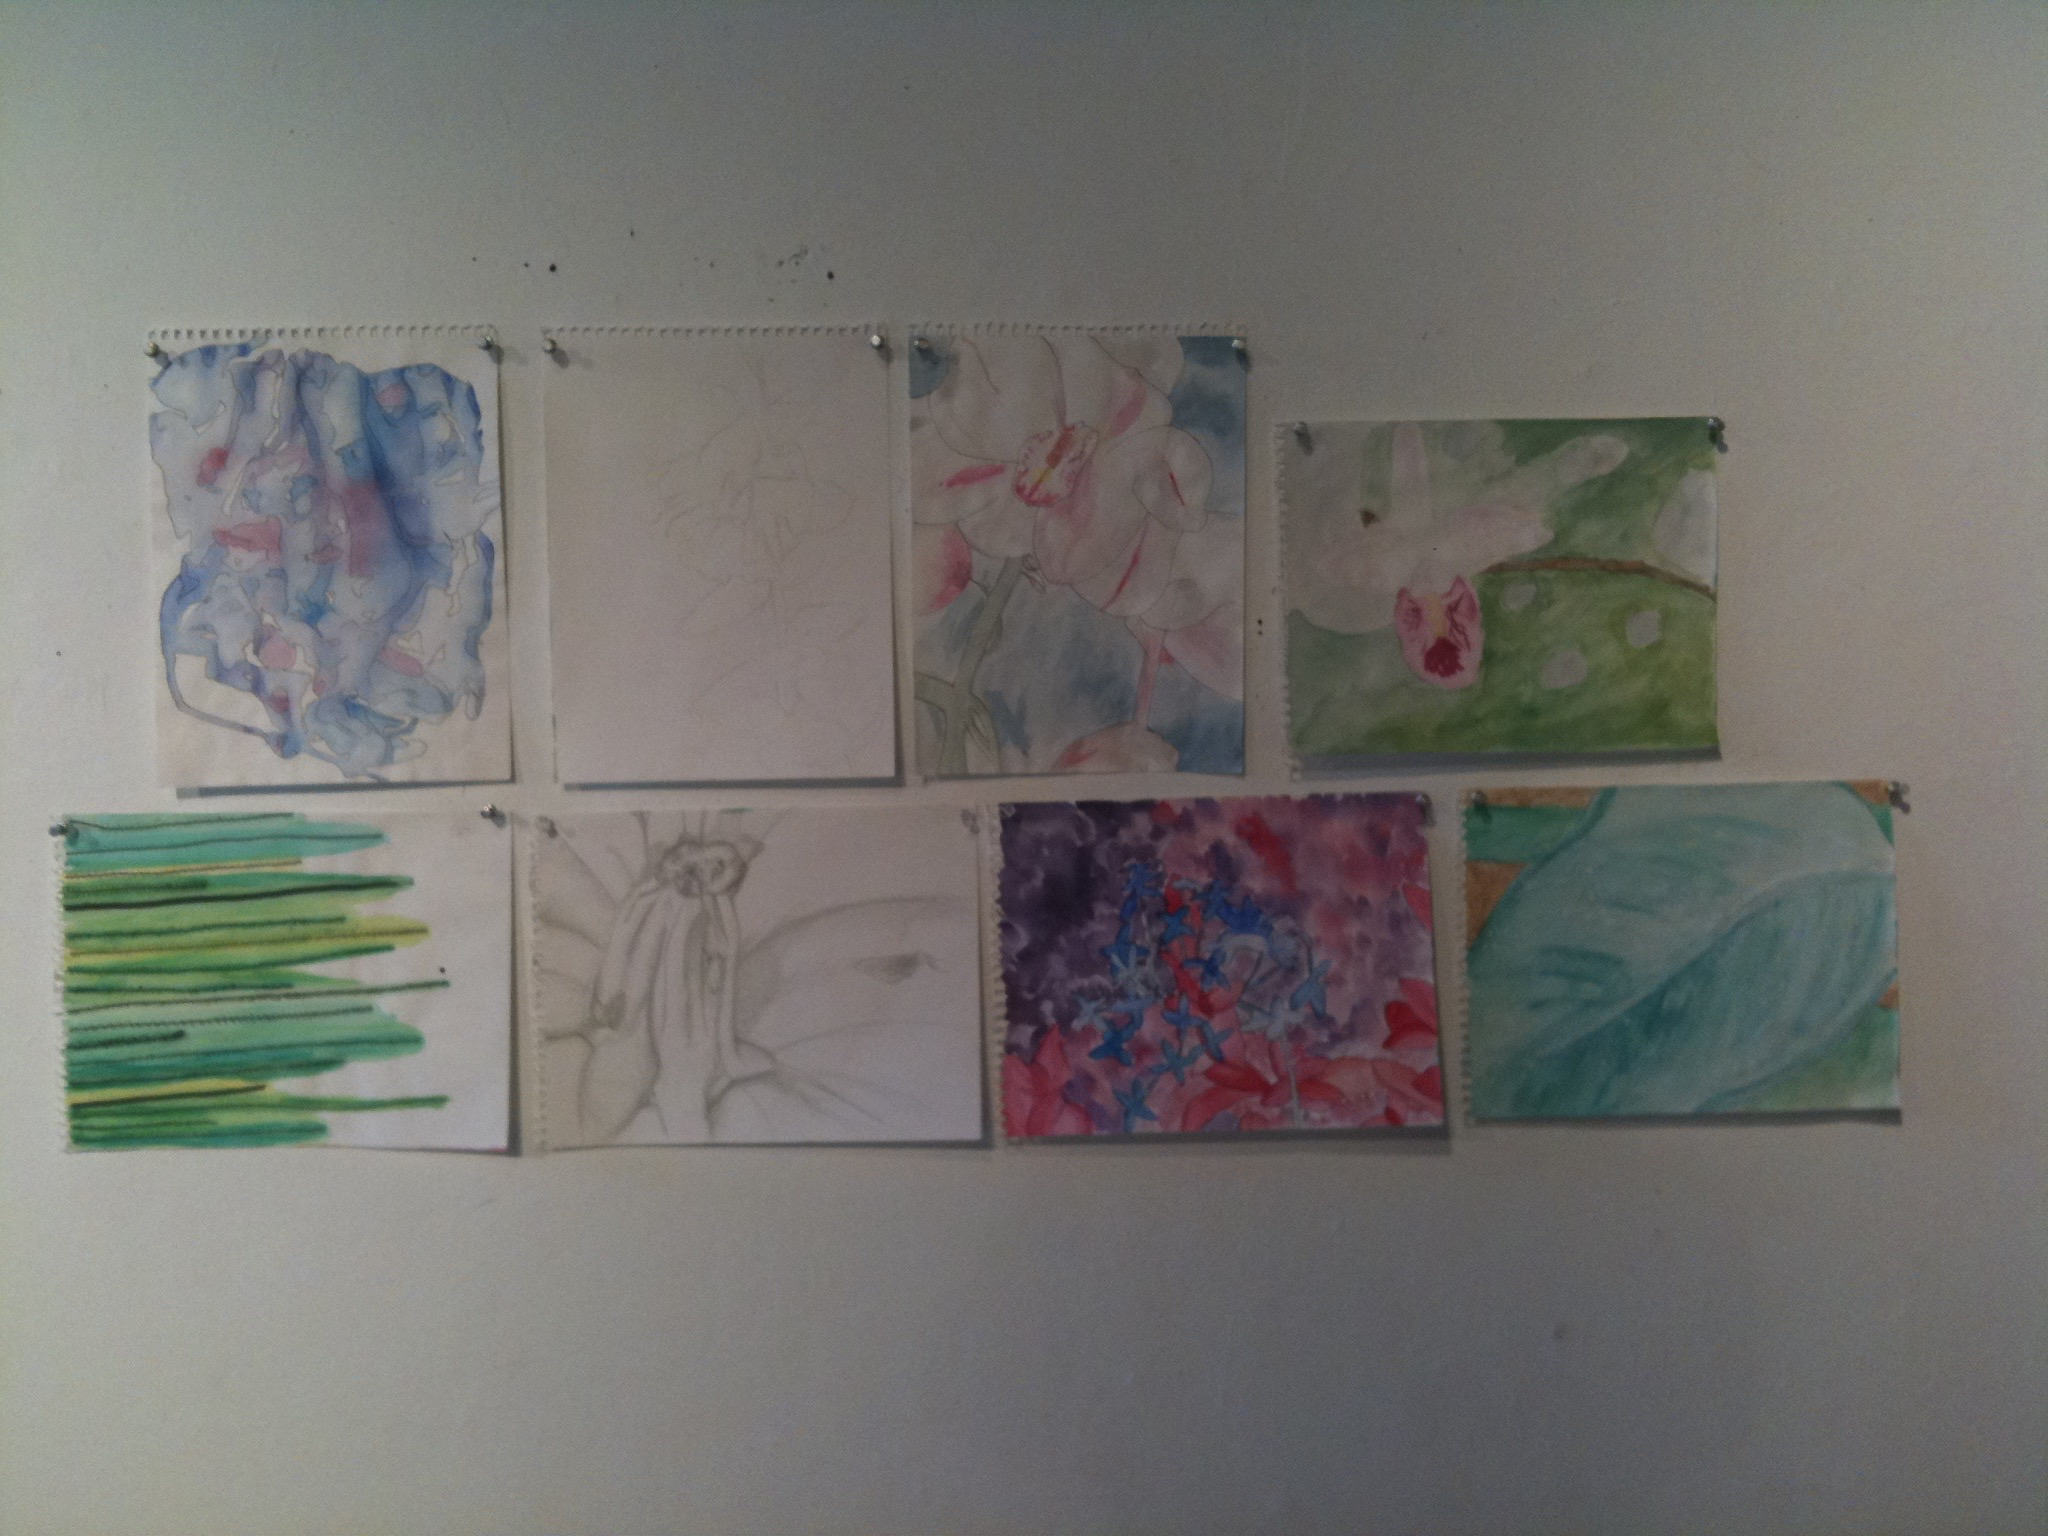 Same gallery, different class critique. These drawings/paintings were for my intermediate drawing class. I still love to draw and paint from nature today!